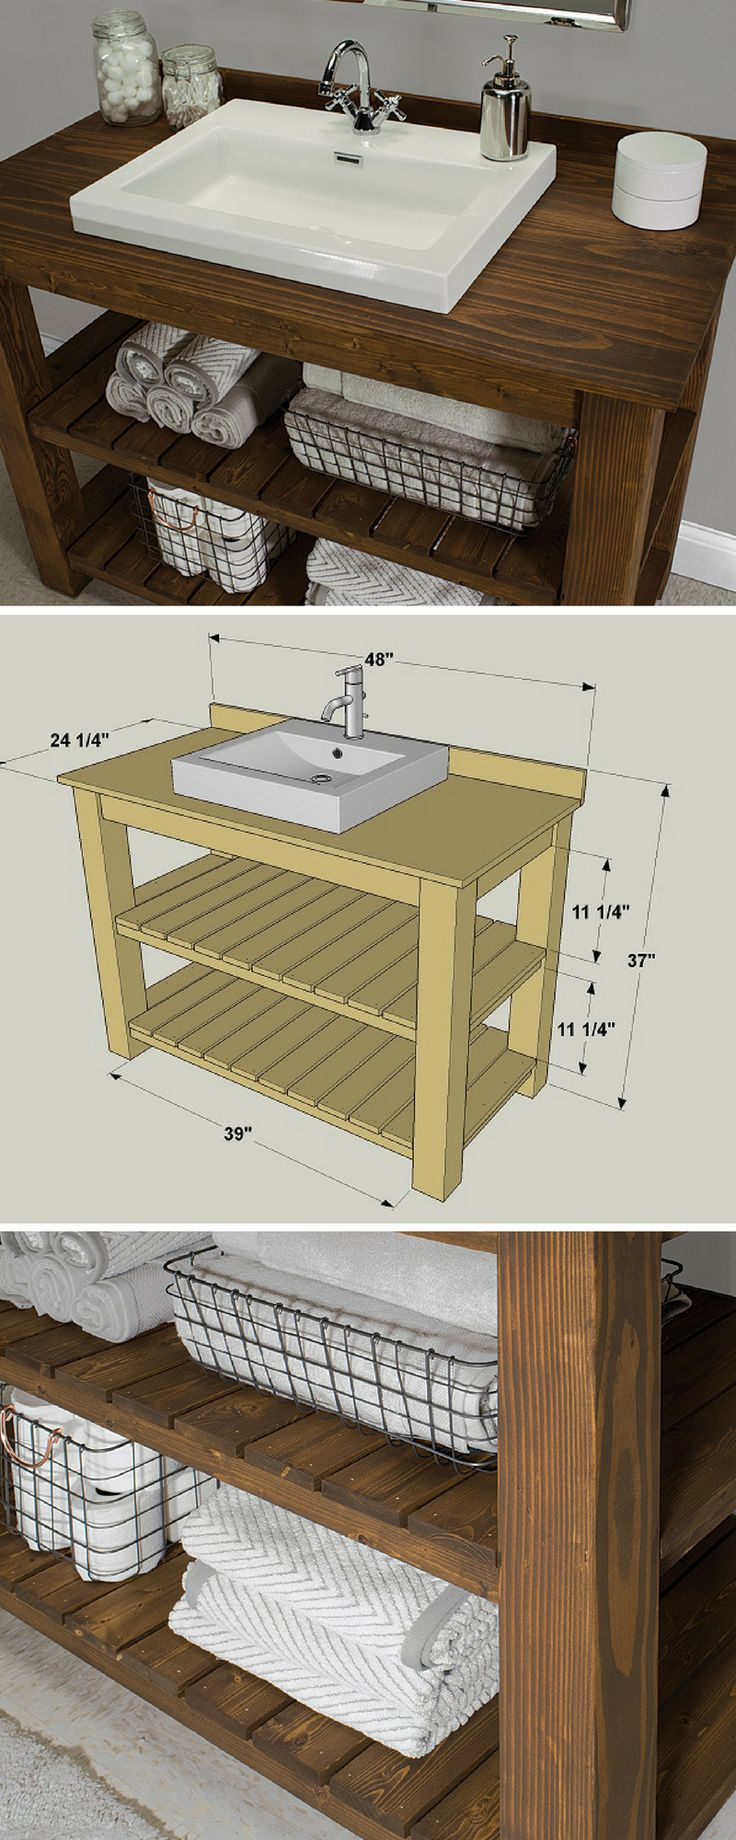 rustic pine bathroom vanity. By combining simple lines and stained pine construction with a modern style  sink this vanity combines rustic contemporary for sophisticated look Best 25 Diy bathroom ideas on Pinterest Bathroom